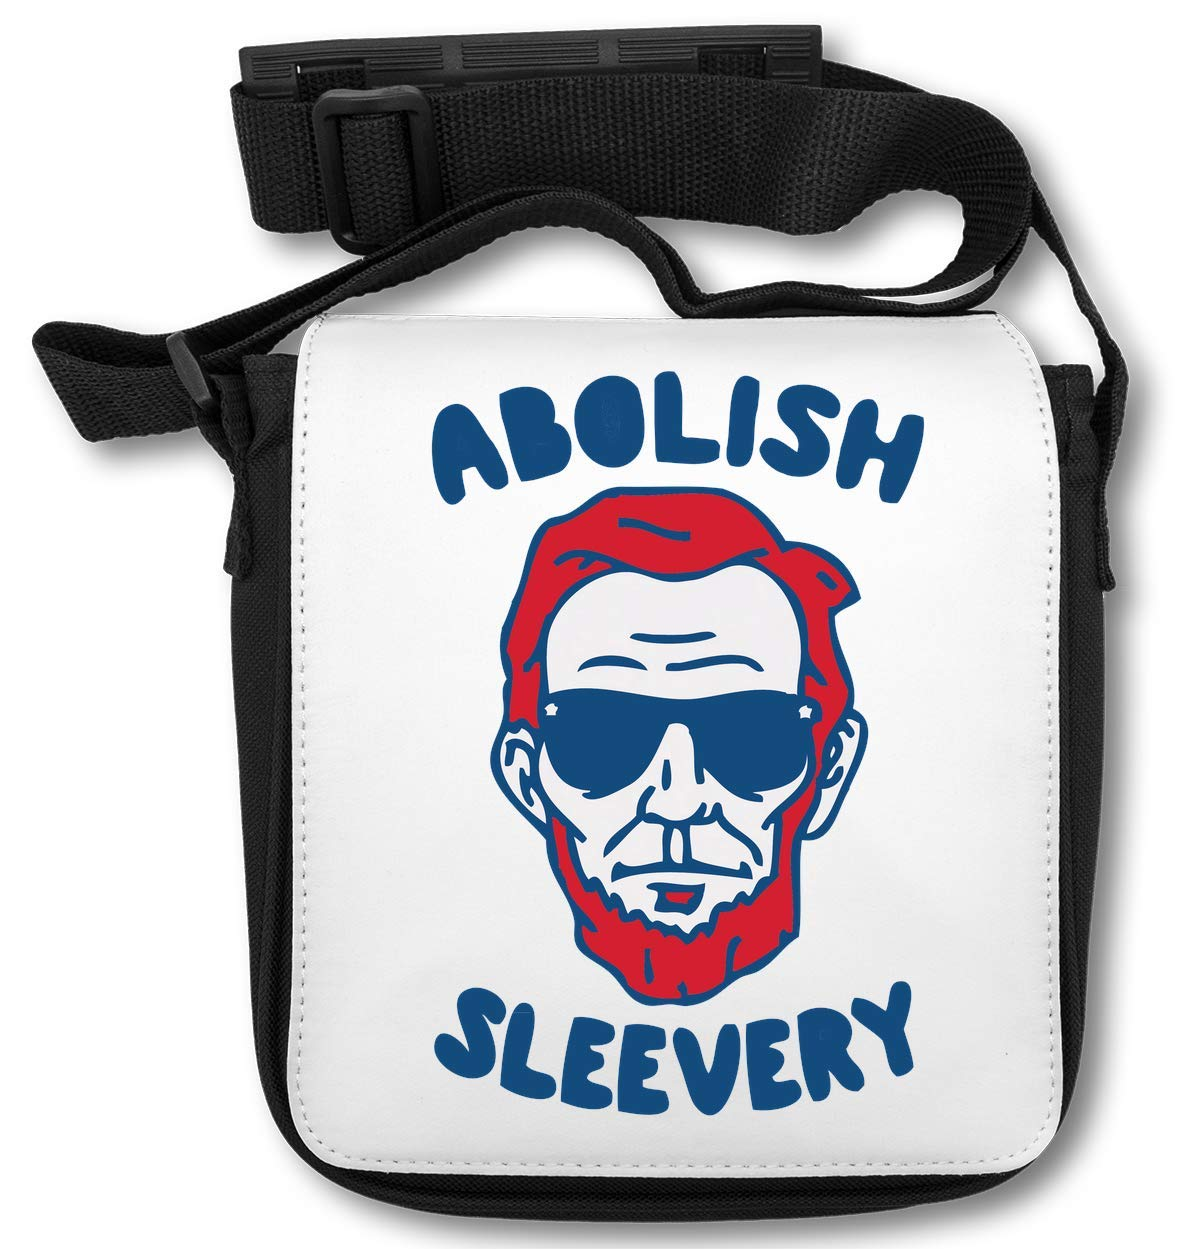 Abraham Lincoln Abolish Sleevery Sac d'épaule